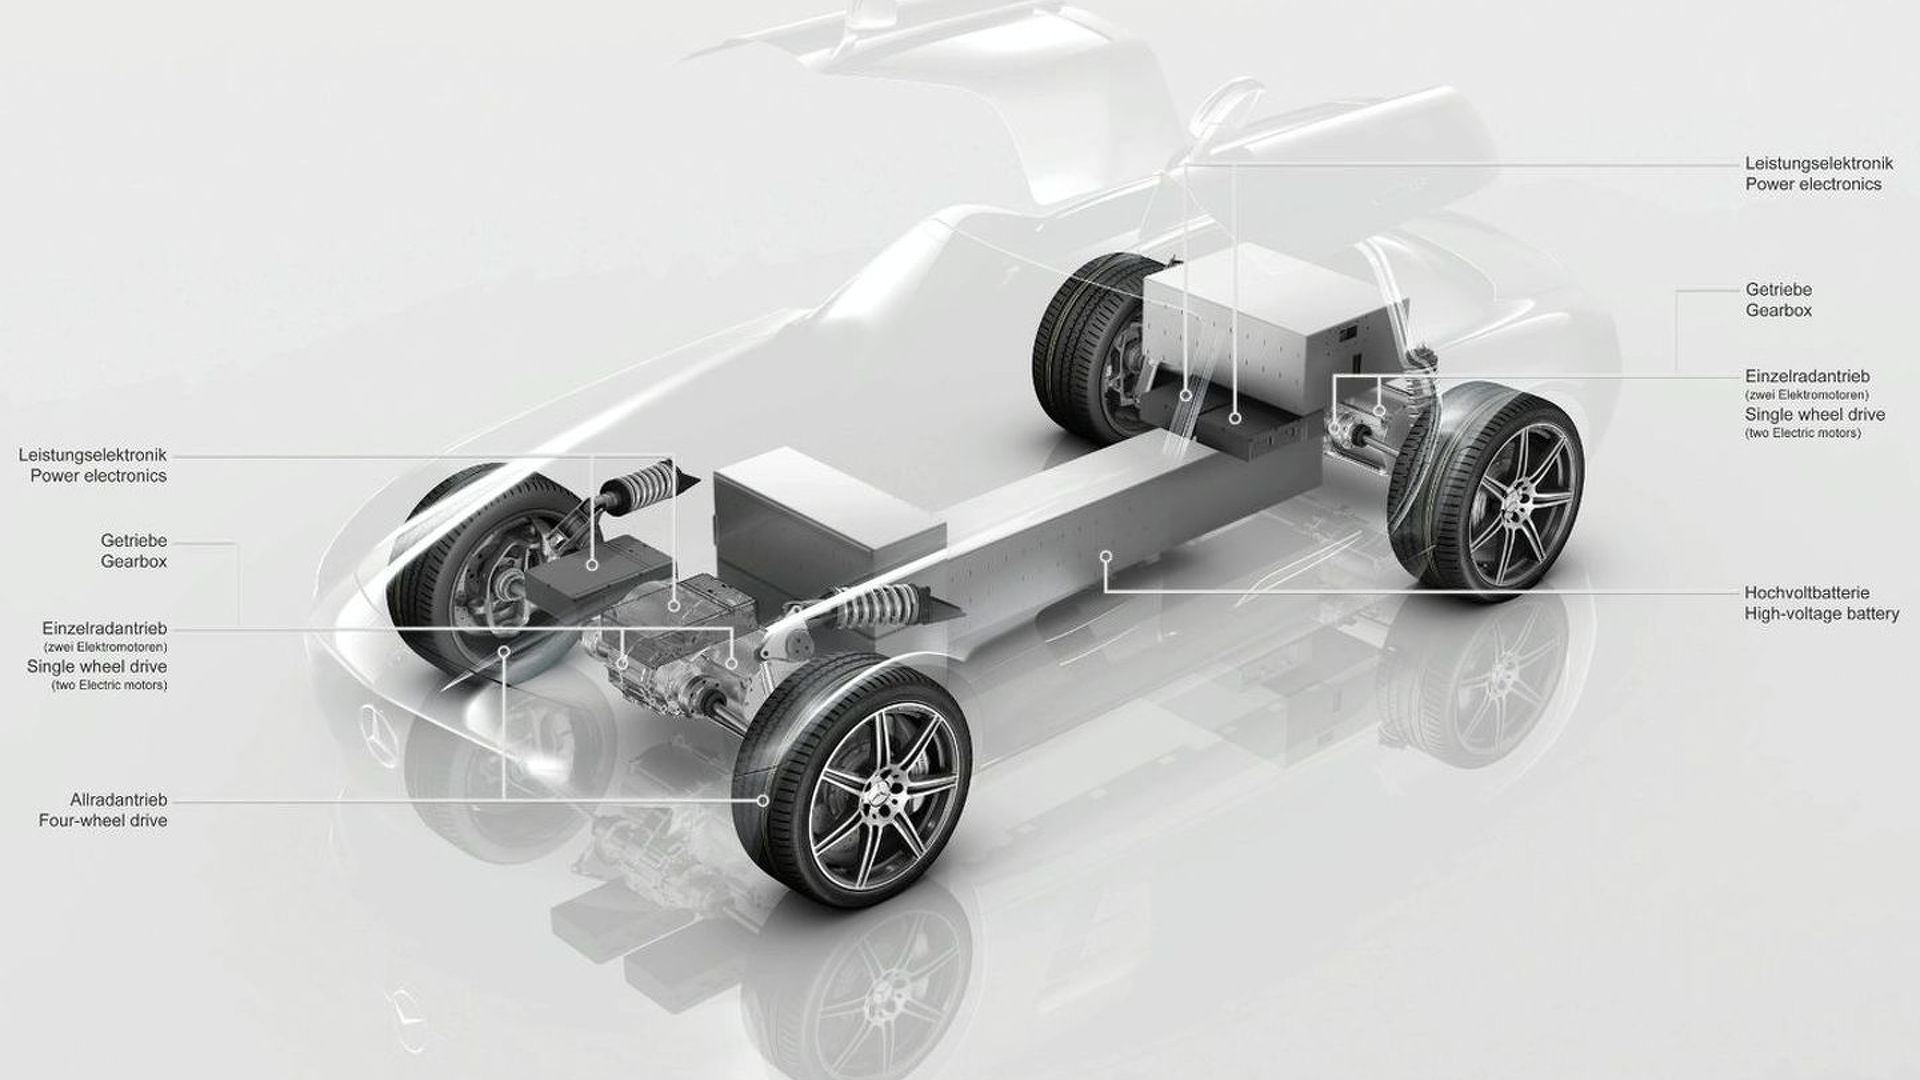 Mercedes announces sls amg gullwing electric drive malvernweather Images